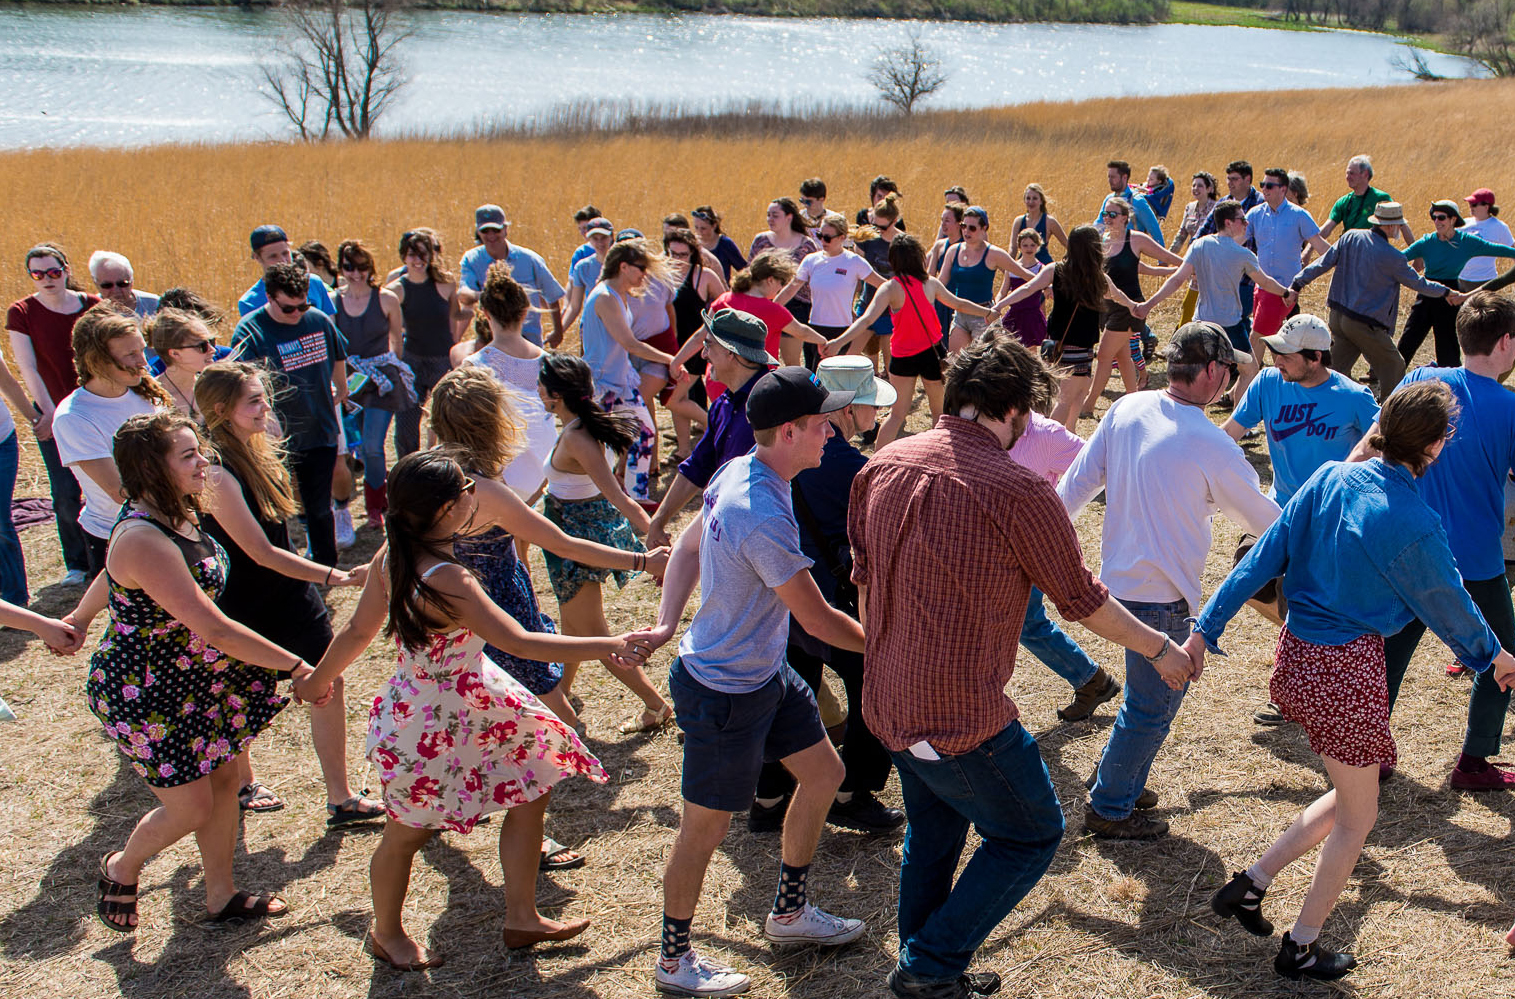 The Grinnell community gathers at the College's [Conard Environmental Research Area](https://www.grinnell.edu/academics/majors-concentrations/biology/cera) to celebrate the National Water Dance in 2016.